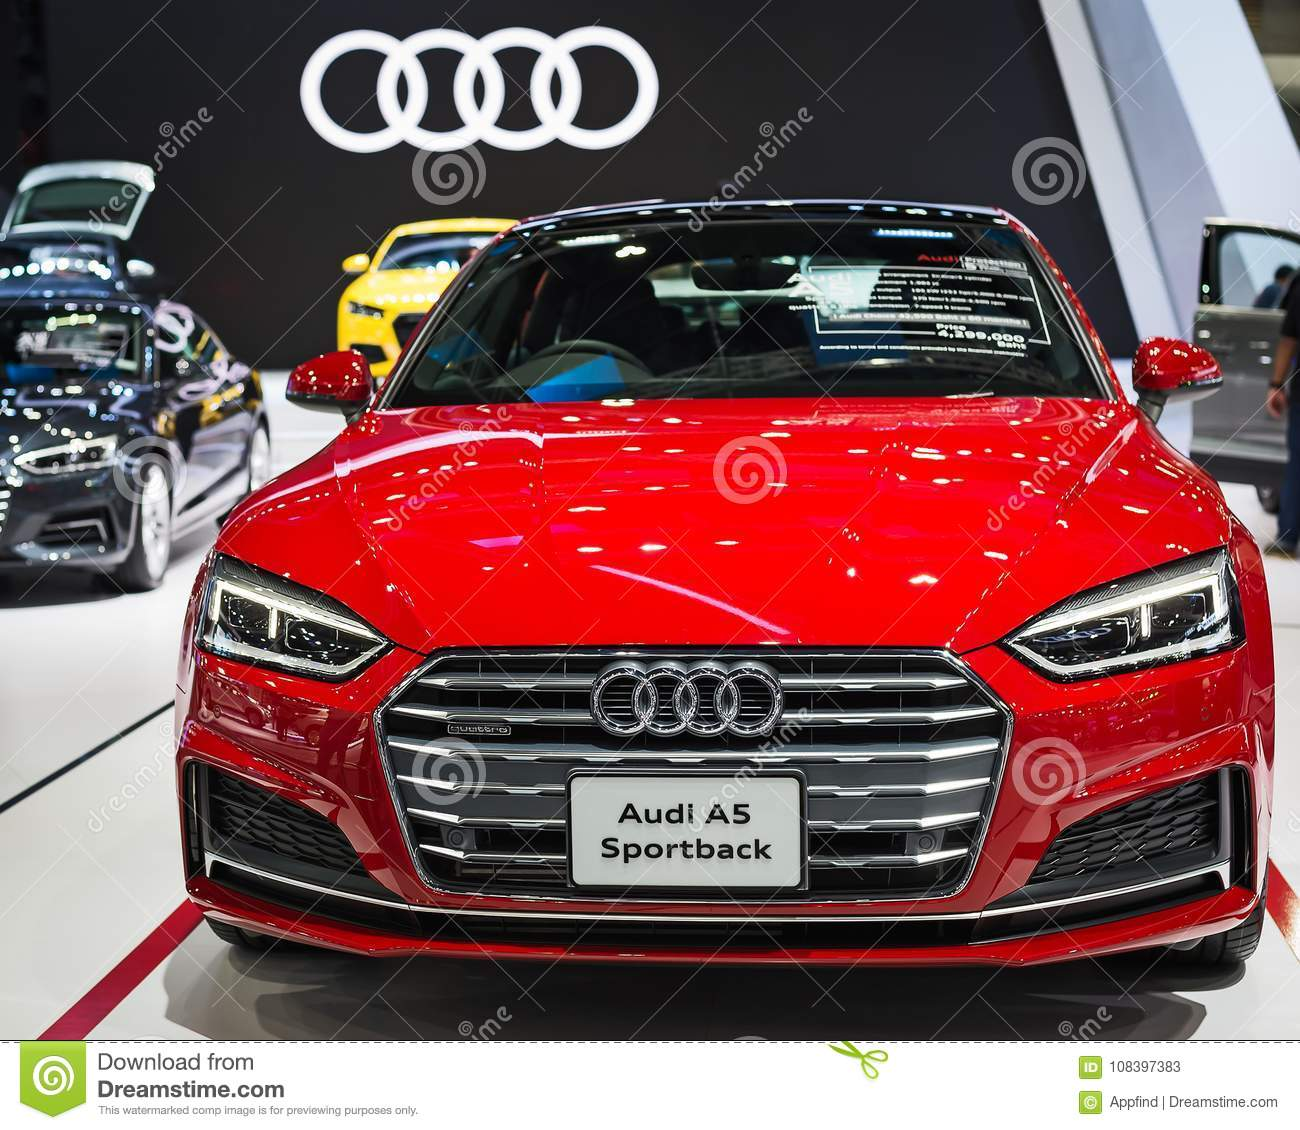 Audi A5 Car Editorial Stock Photo. Image Of Style